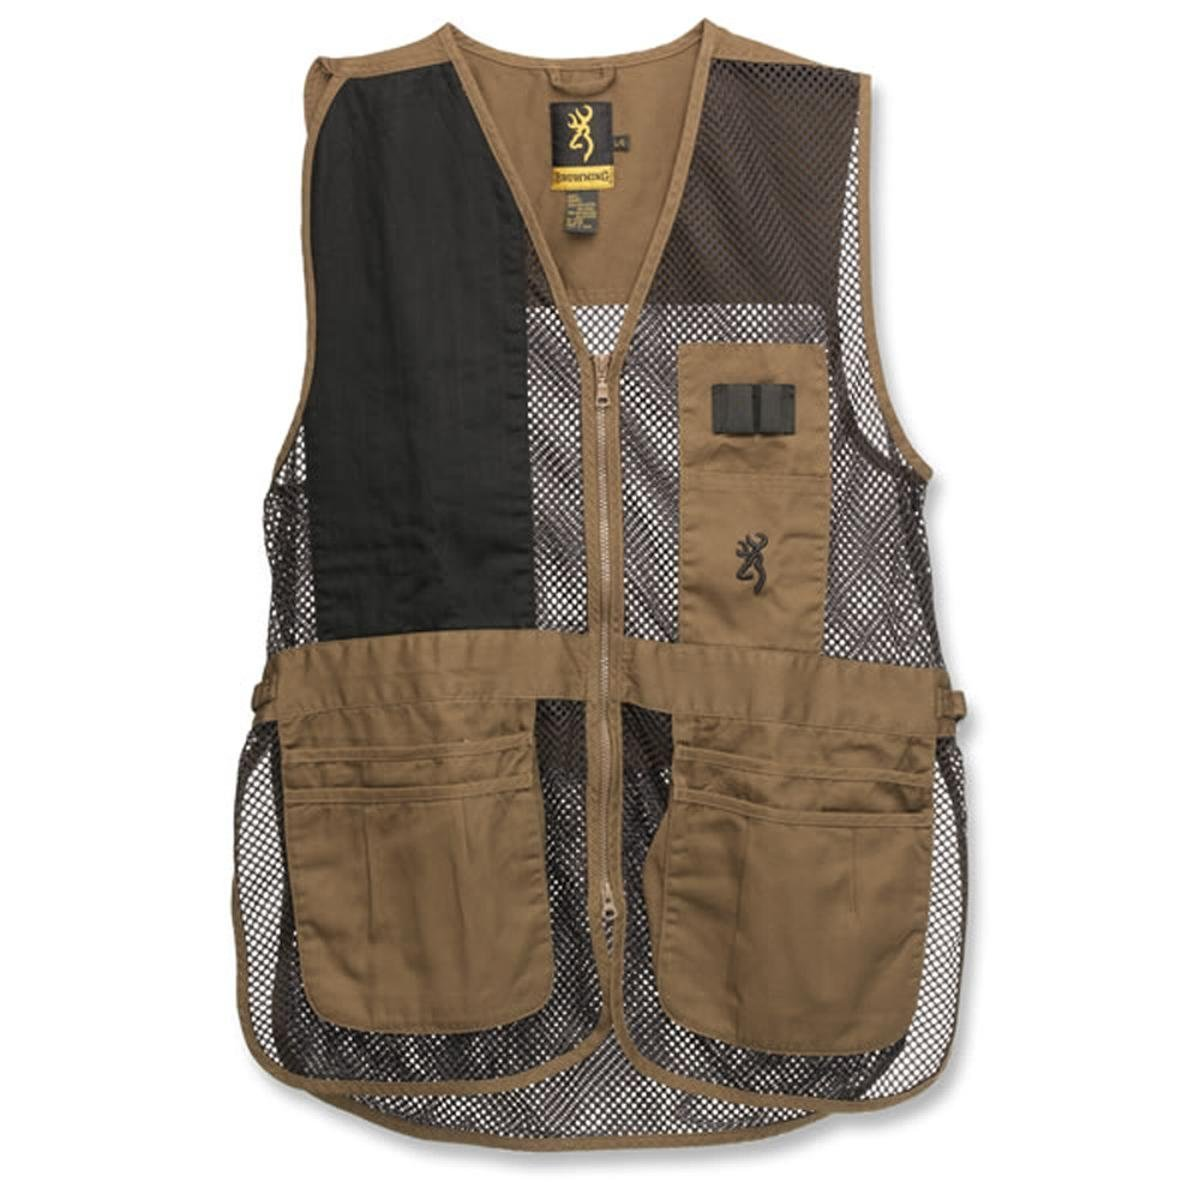 Browning, Trapper Creek Vest, Clay/Black, X-Large by Browning